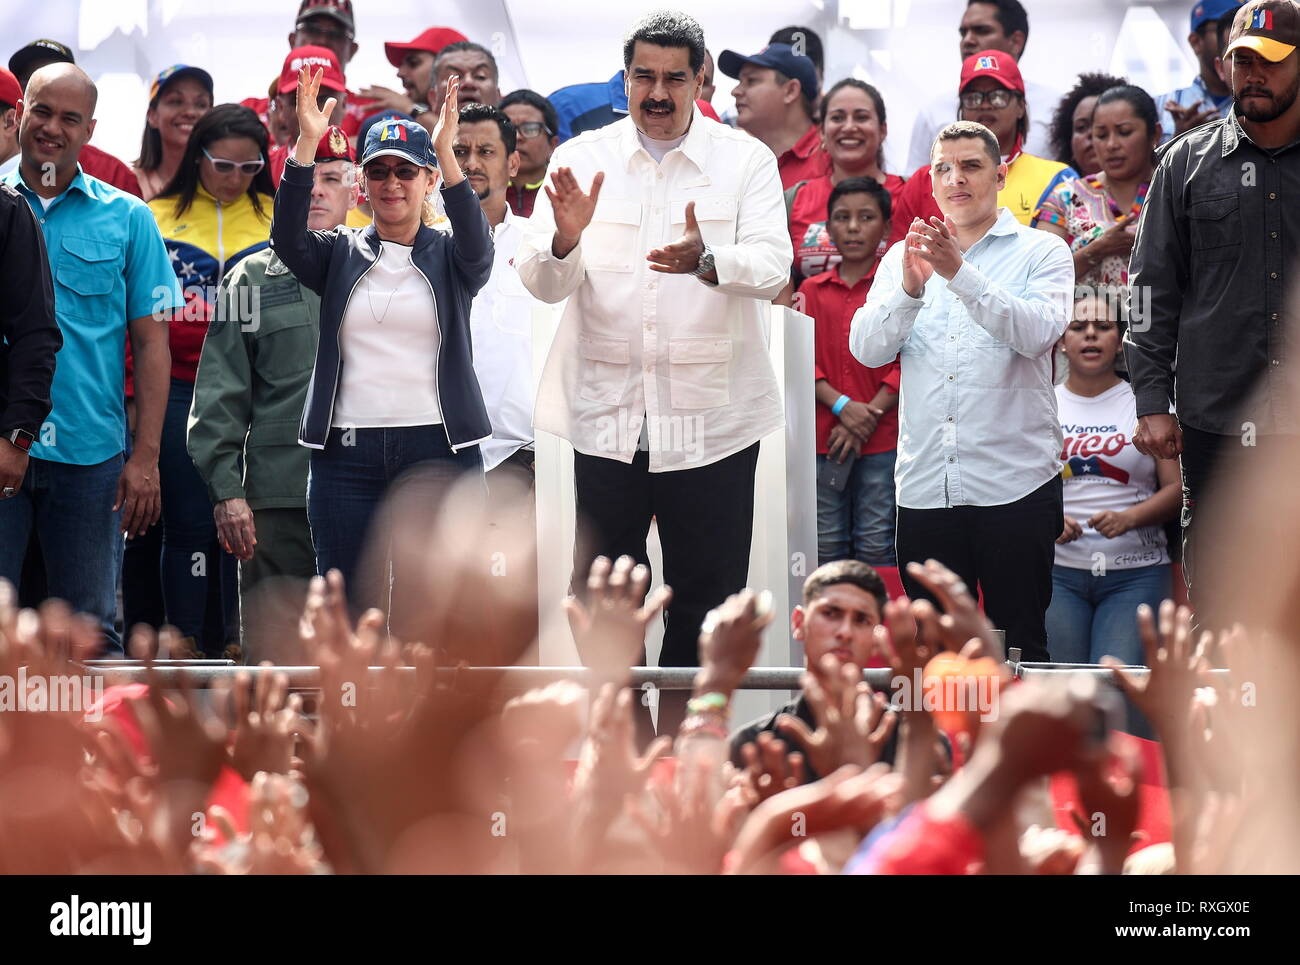 Caracas, Venezuela. 09th Mar, 2019. CARACAS, VENEZUELA - MARCH 10, 2019: Venezuela's President Nicolas Maduro (C) and his wife Cilia Flores (2nd R) during a rally marking Anti-imperialism Day by the Miraflores Palace. Valery Sharifulin/TASS Credit: ITAR-TASS News Agency/Alamy Live News - Stock Image